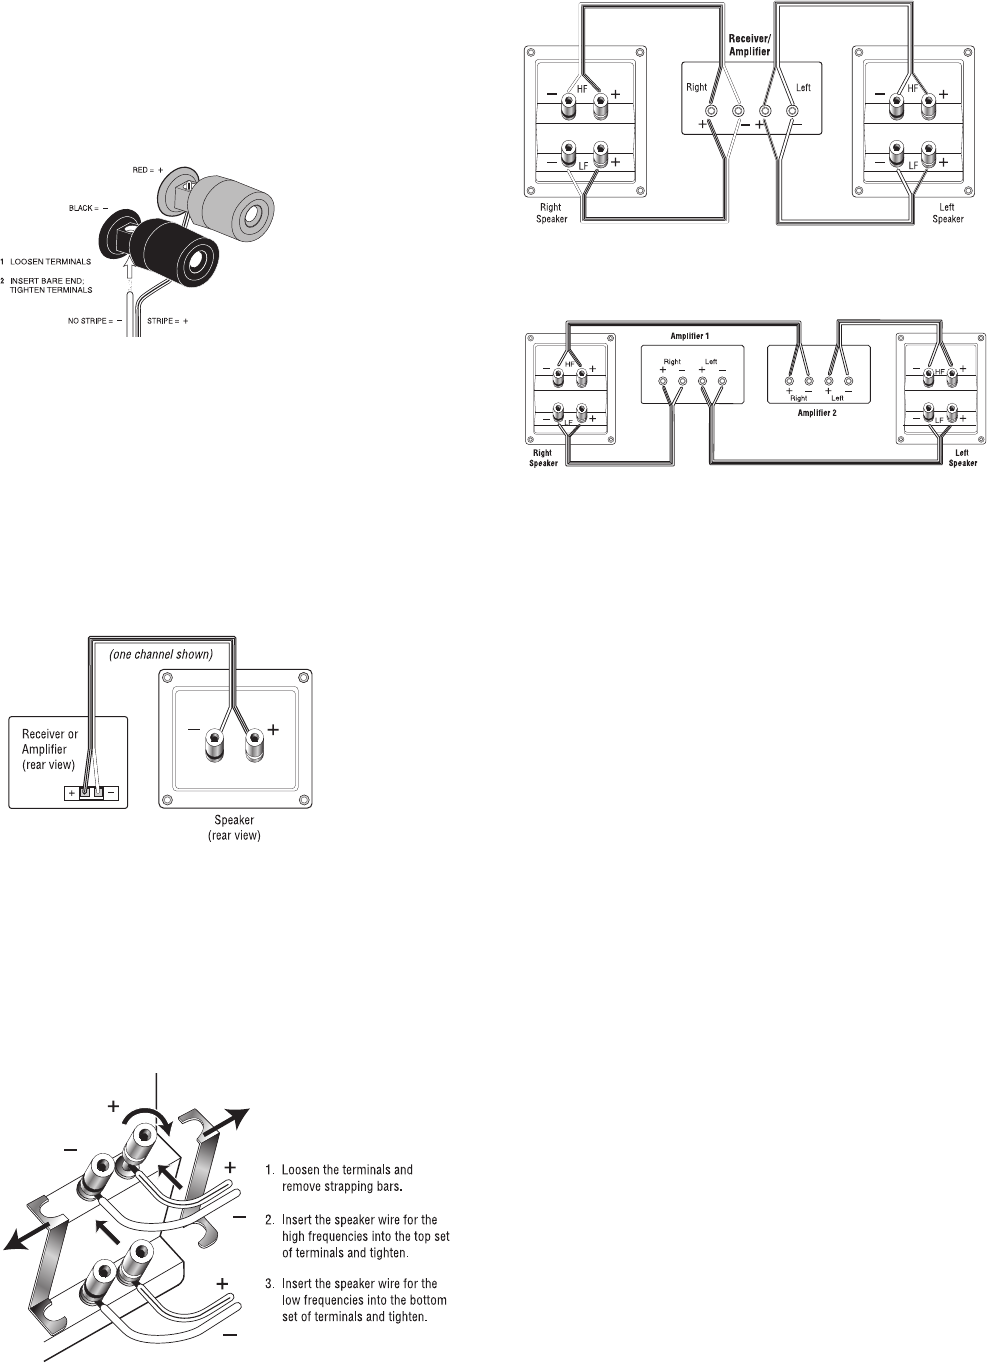 Jbl Home Theater System Es25c Manual Page 4 Of 6 Entertainment Wiring The